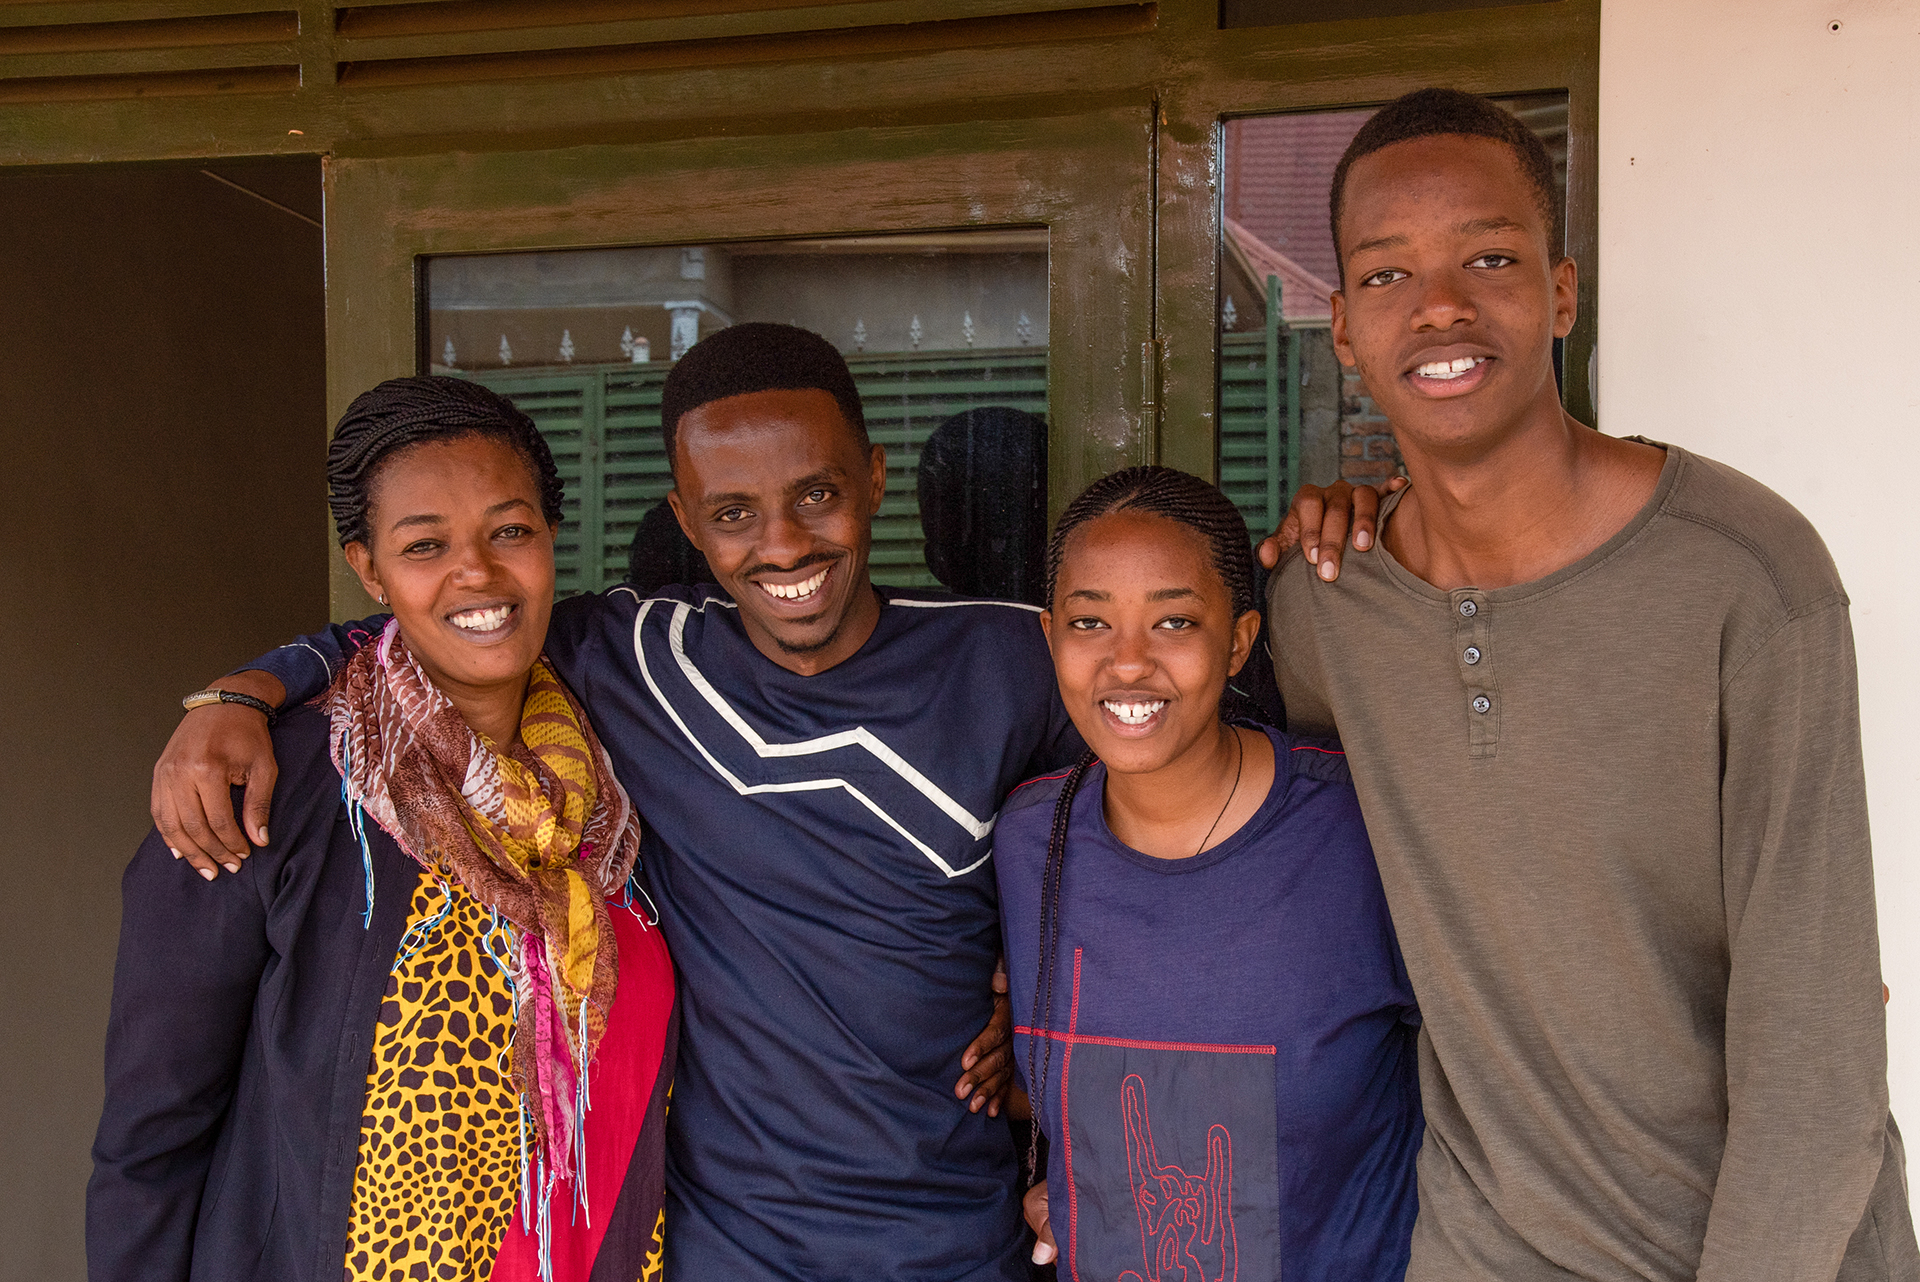 Left to right, Christian's aunt Pascasie, Christian, and his cousins Cynthia and Mugisha stand with their arms around each other.